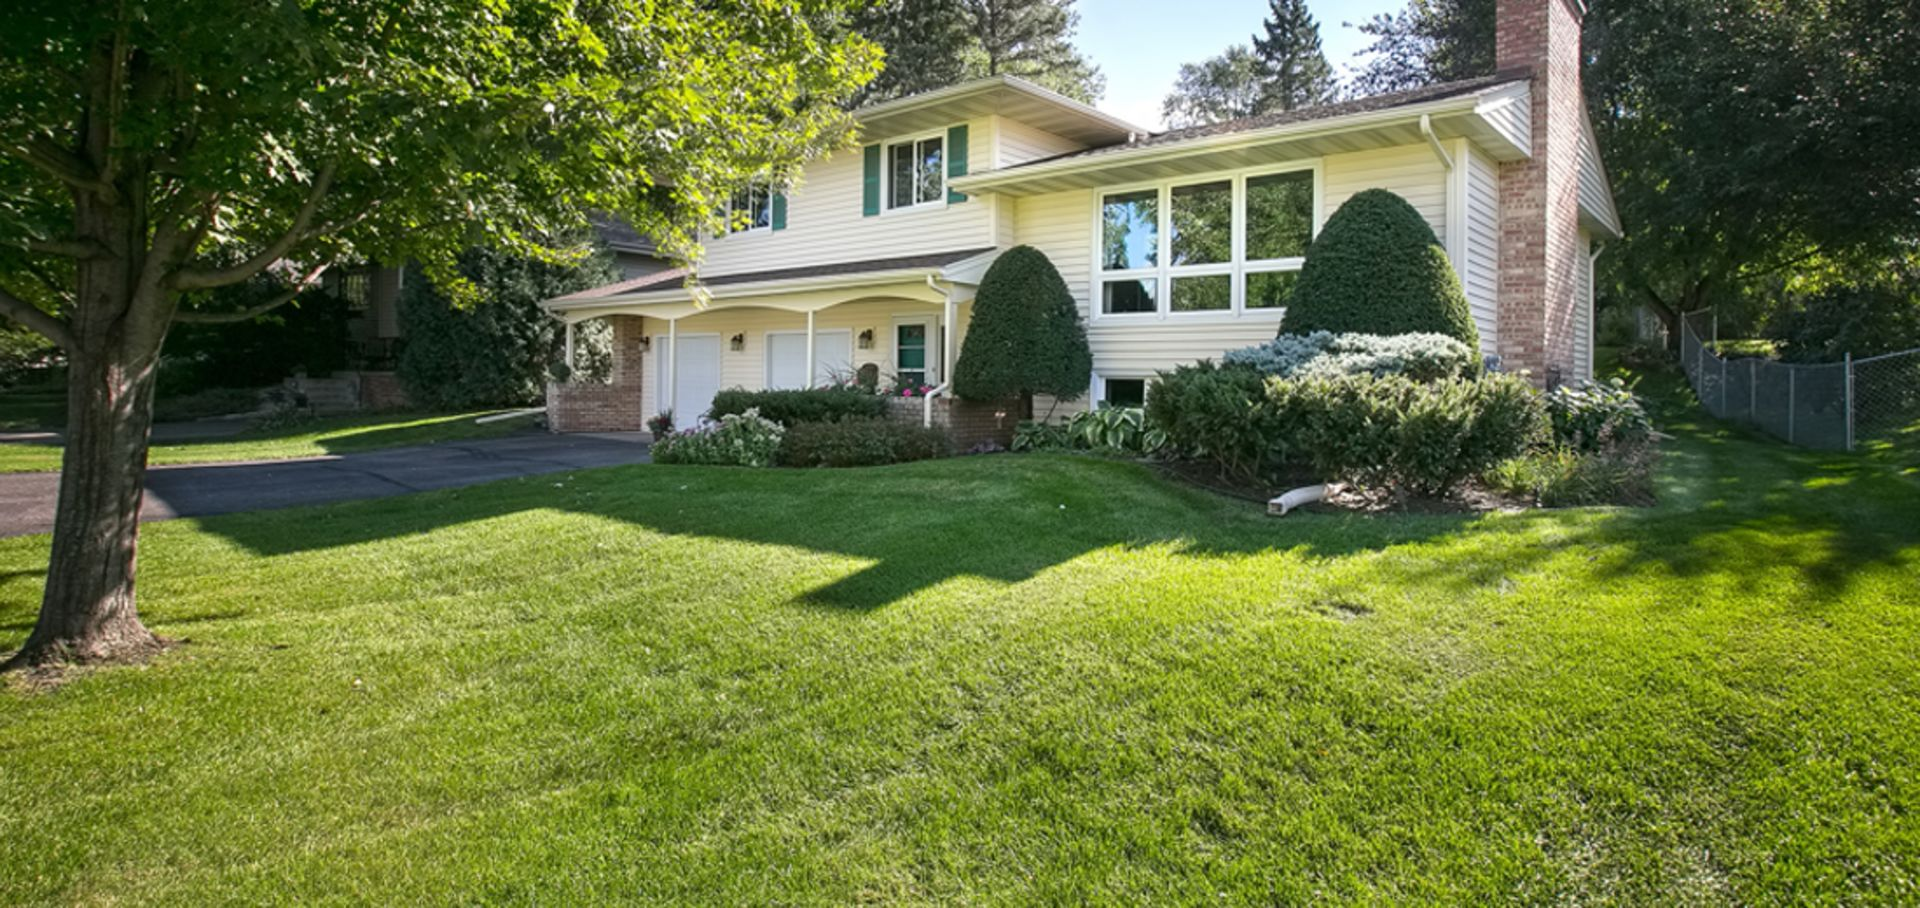 Beautifully Maintained Home in Saint Louis Park